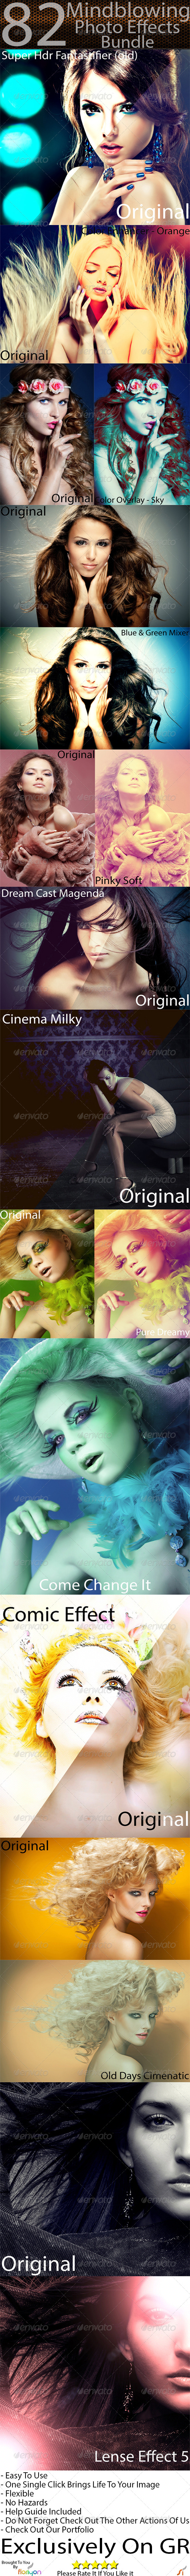 GraphicRiver 82 Mindblowing Photo Effects Bundle 5048620